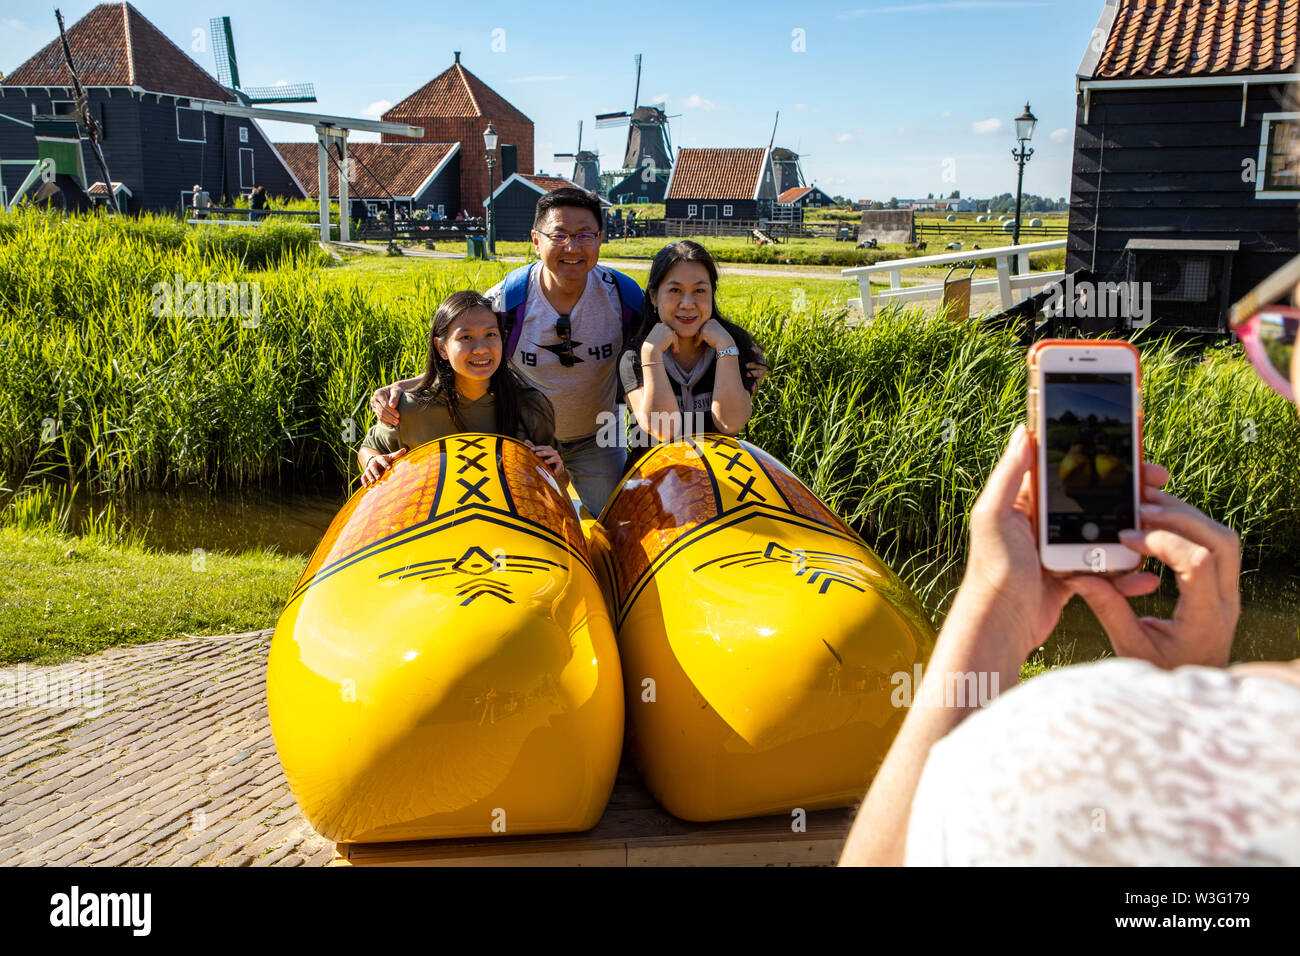 Zaanse Schans, Netherlands, historical village, open-air museum in North Holland, old windmills, workshops, farms, houses, tourists, souvenir photo in - Stock Image